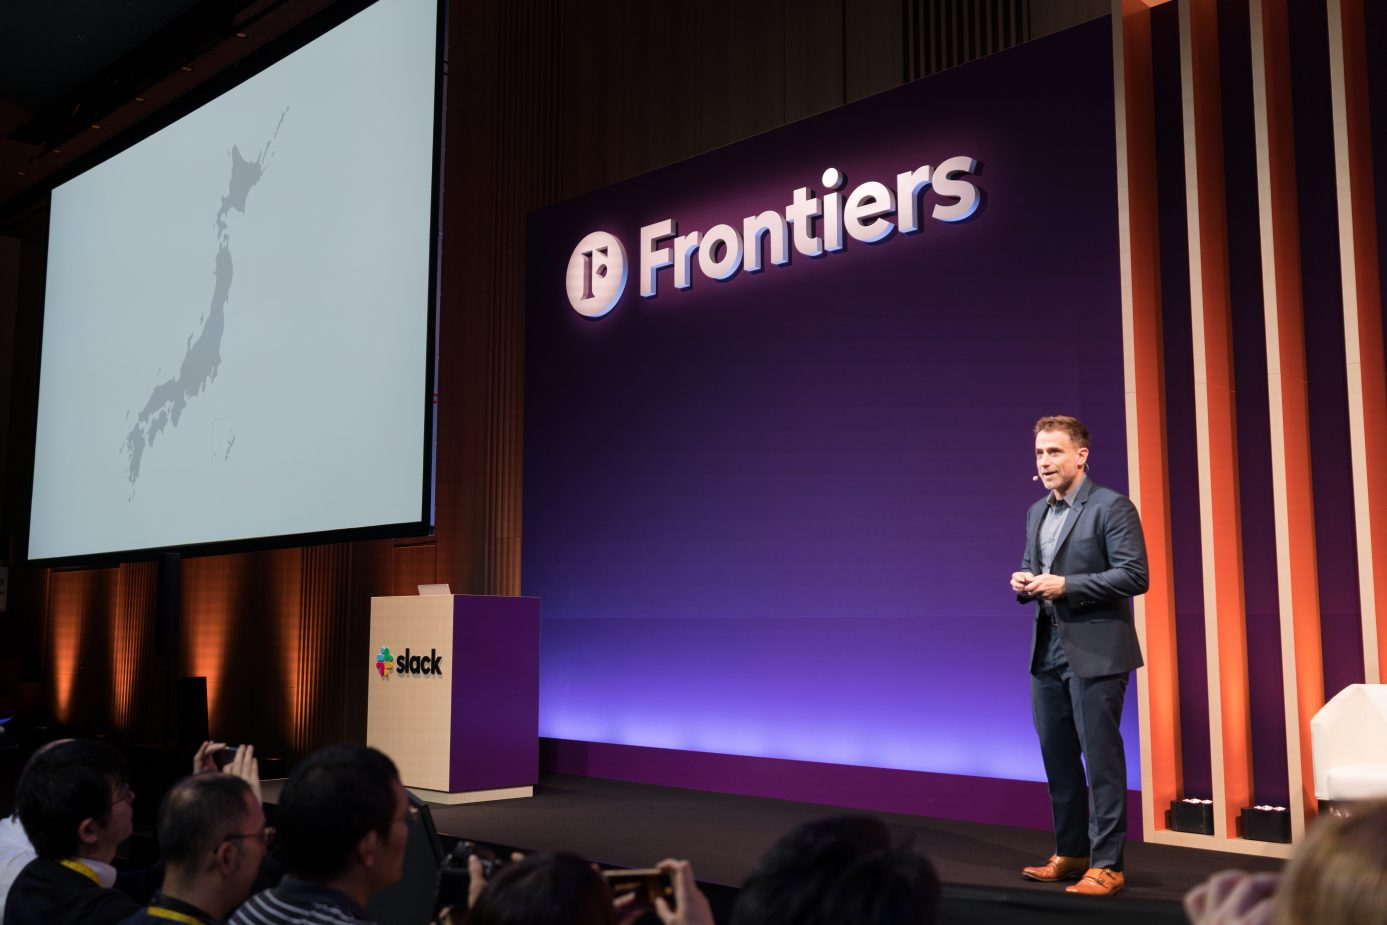 Slack founder and CEO Stewart Butterfield addresses attendees from the stage at Frontiers Tokyo.